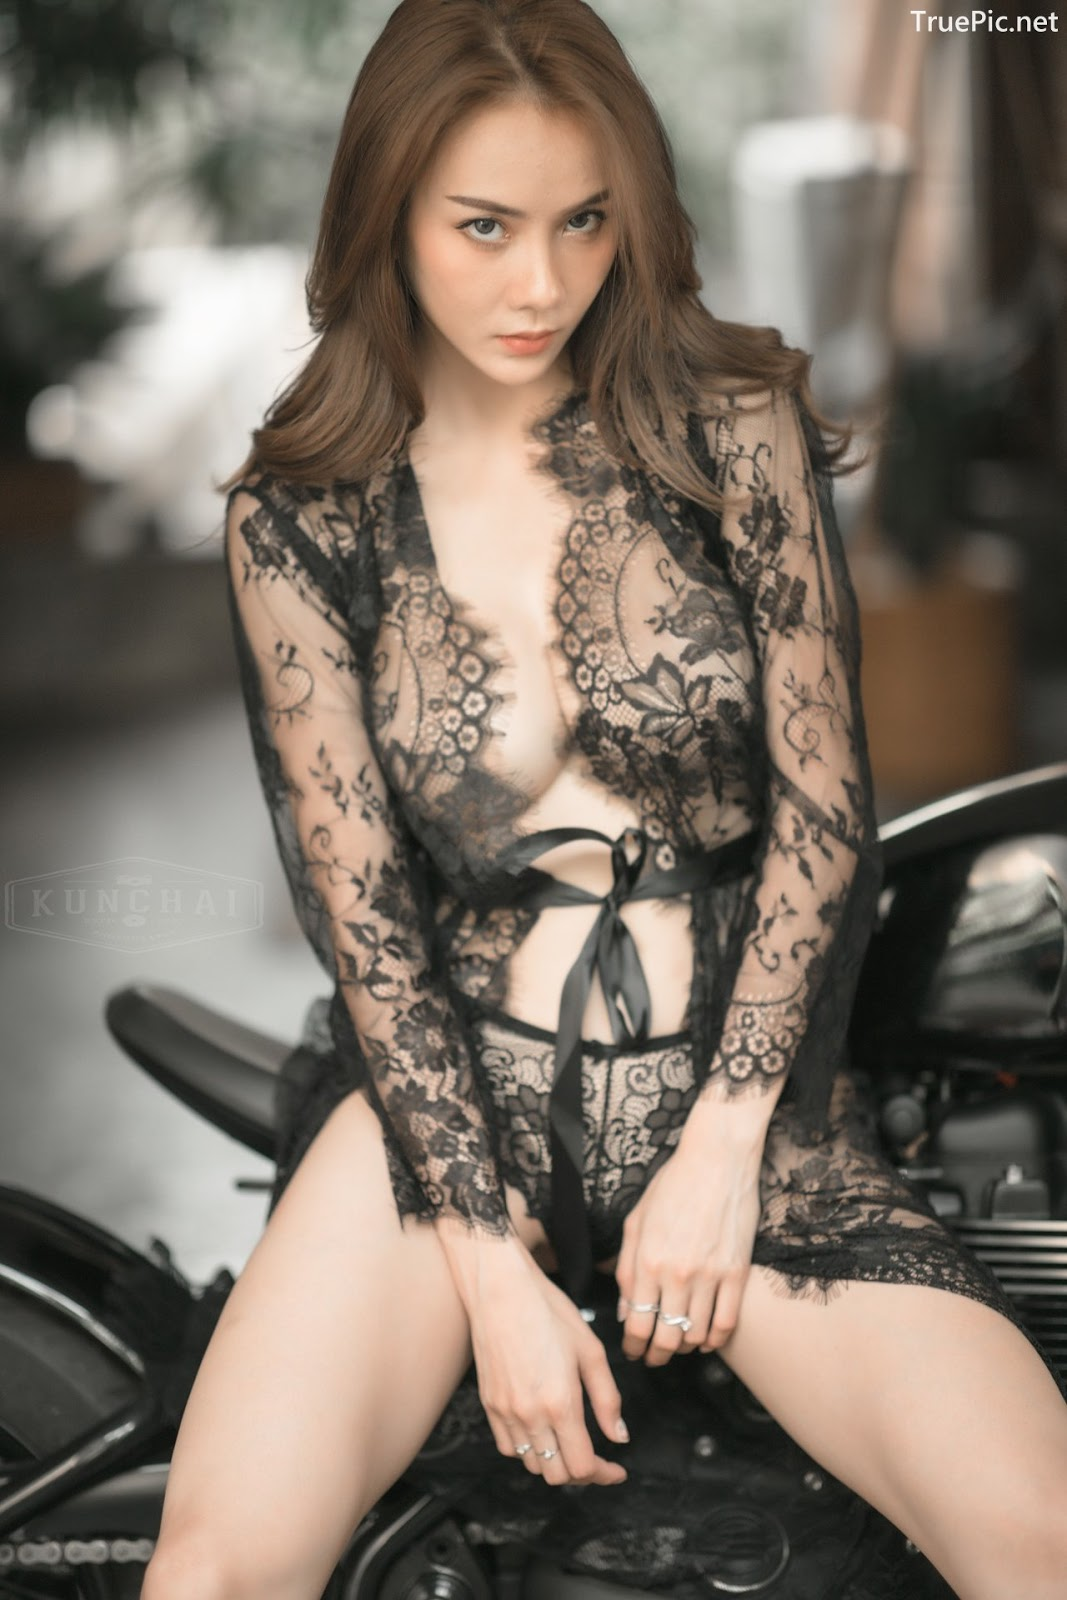 Image Thailand Sexy Model - Soraya Upaiprom - Black Lace Lingerie - TruePic.net - Picture-7